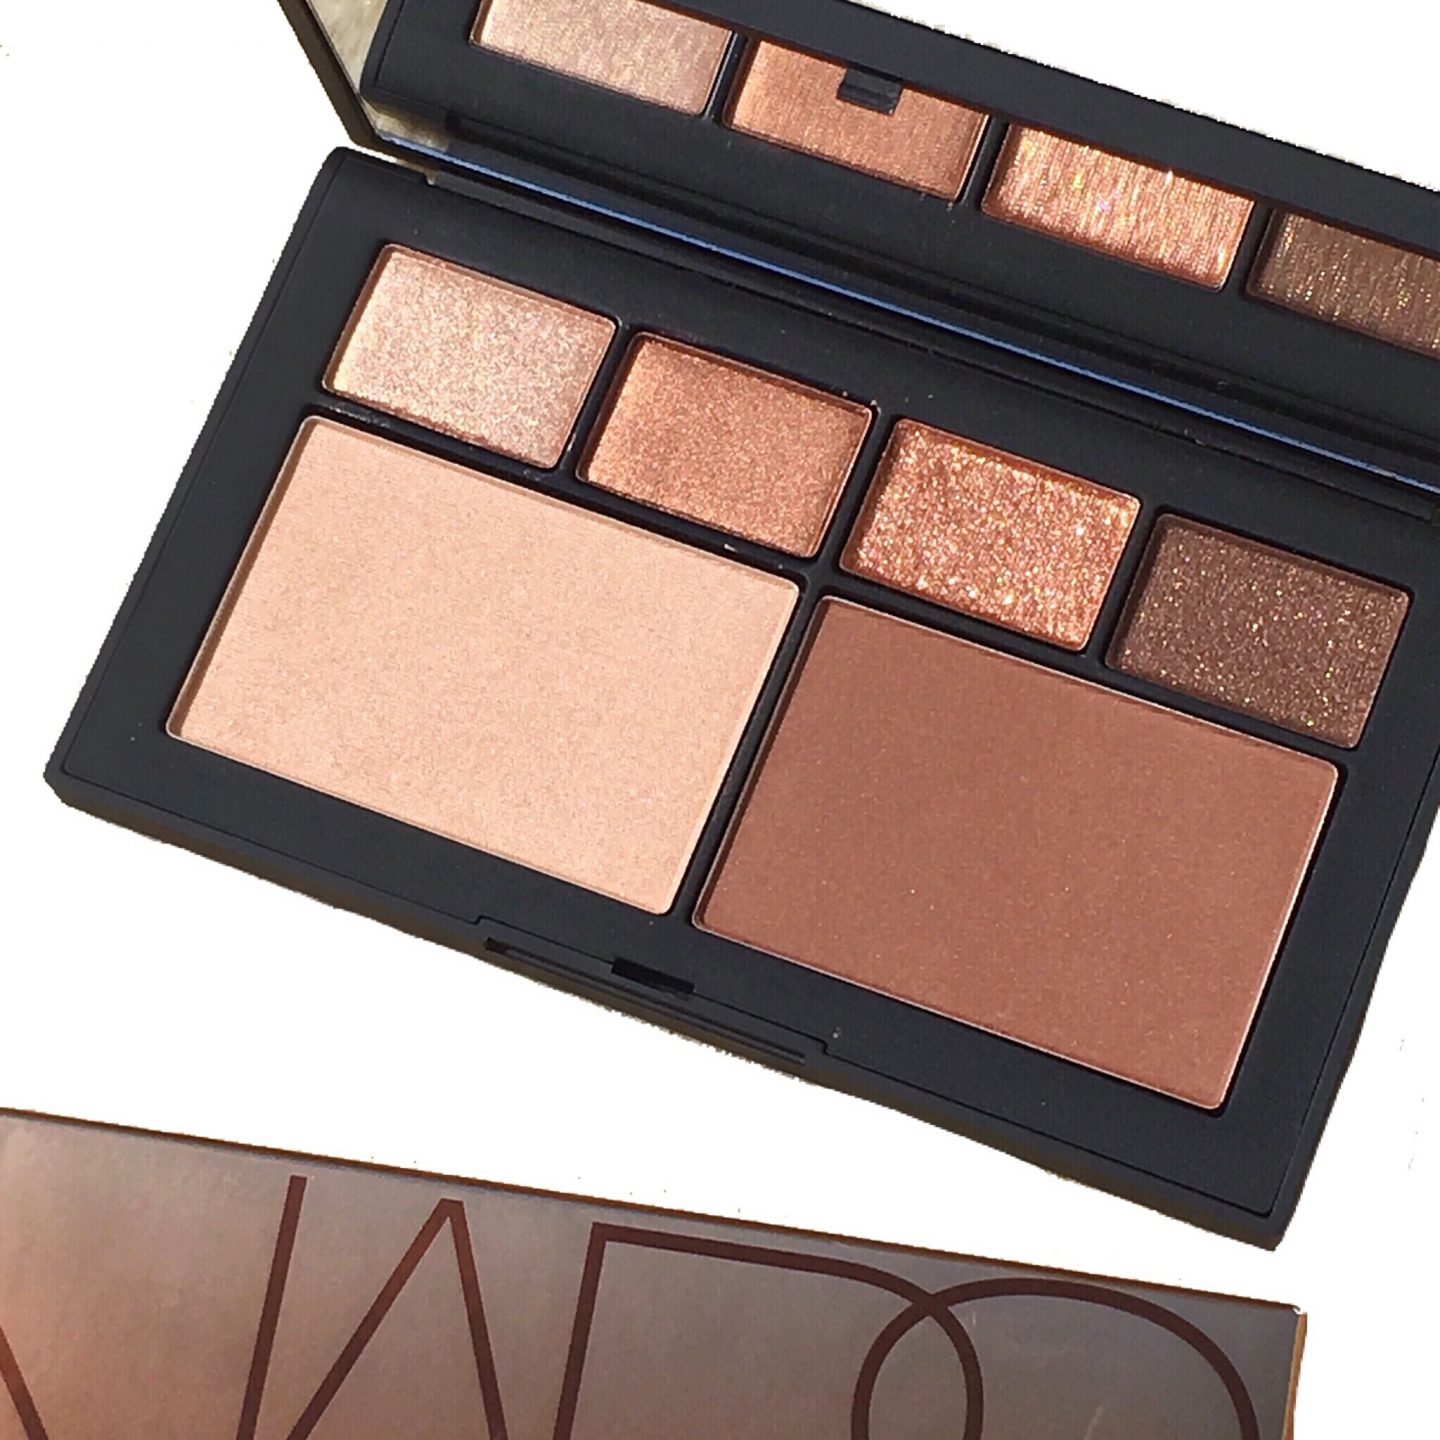 NARS Atomic Blonde Eye and Cheek Palette Review & Swatches